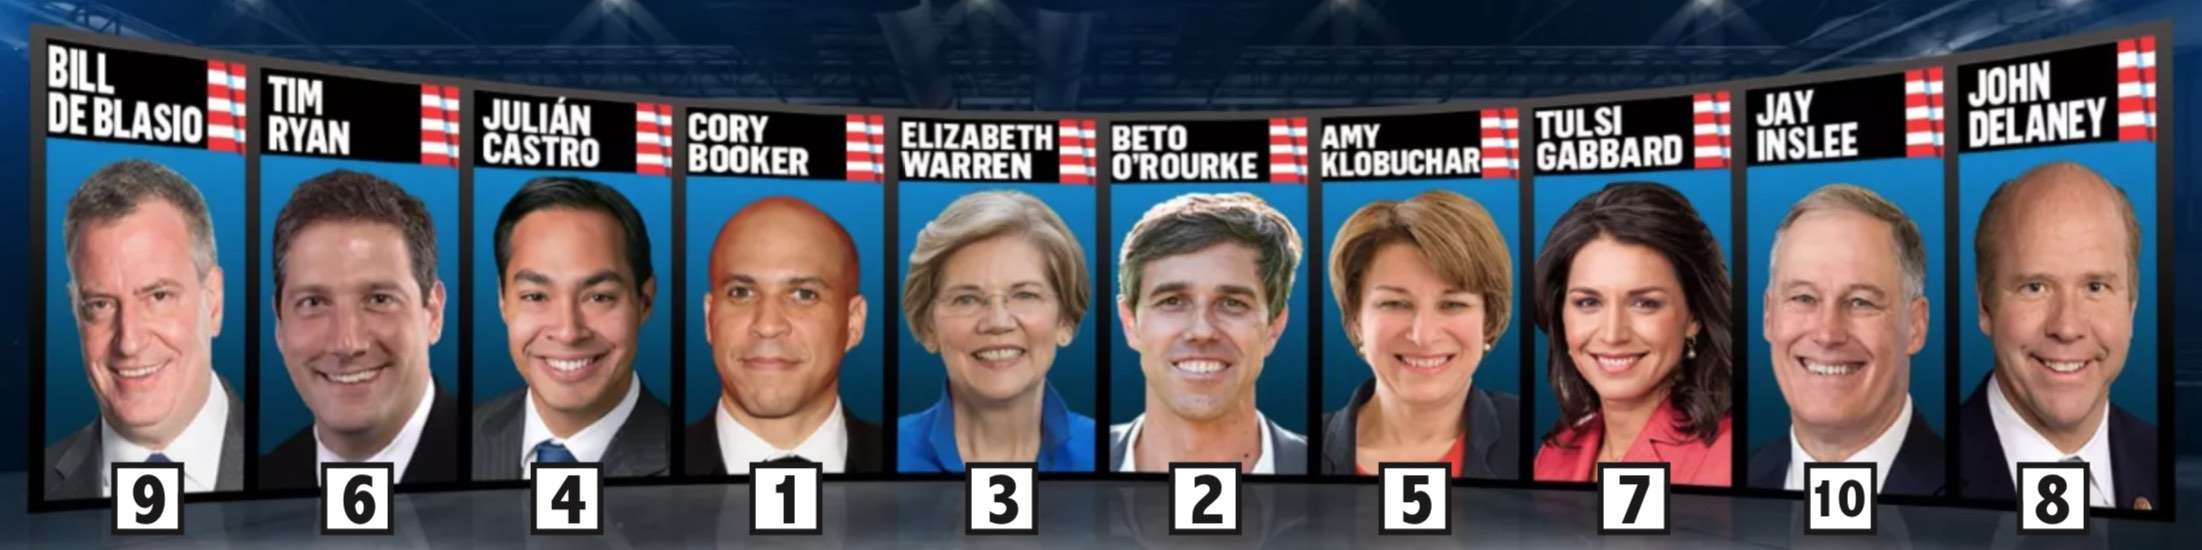 candidates ranked by speaking time